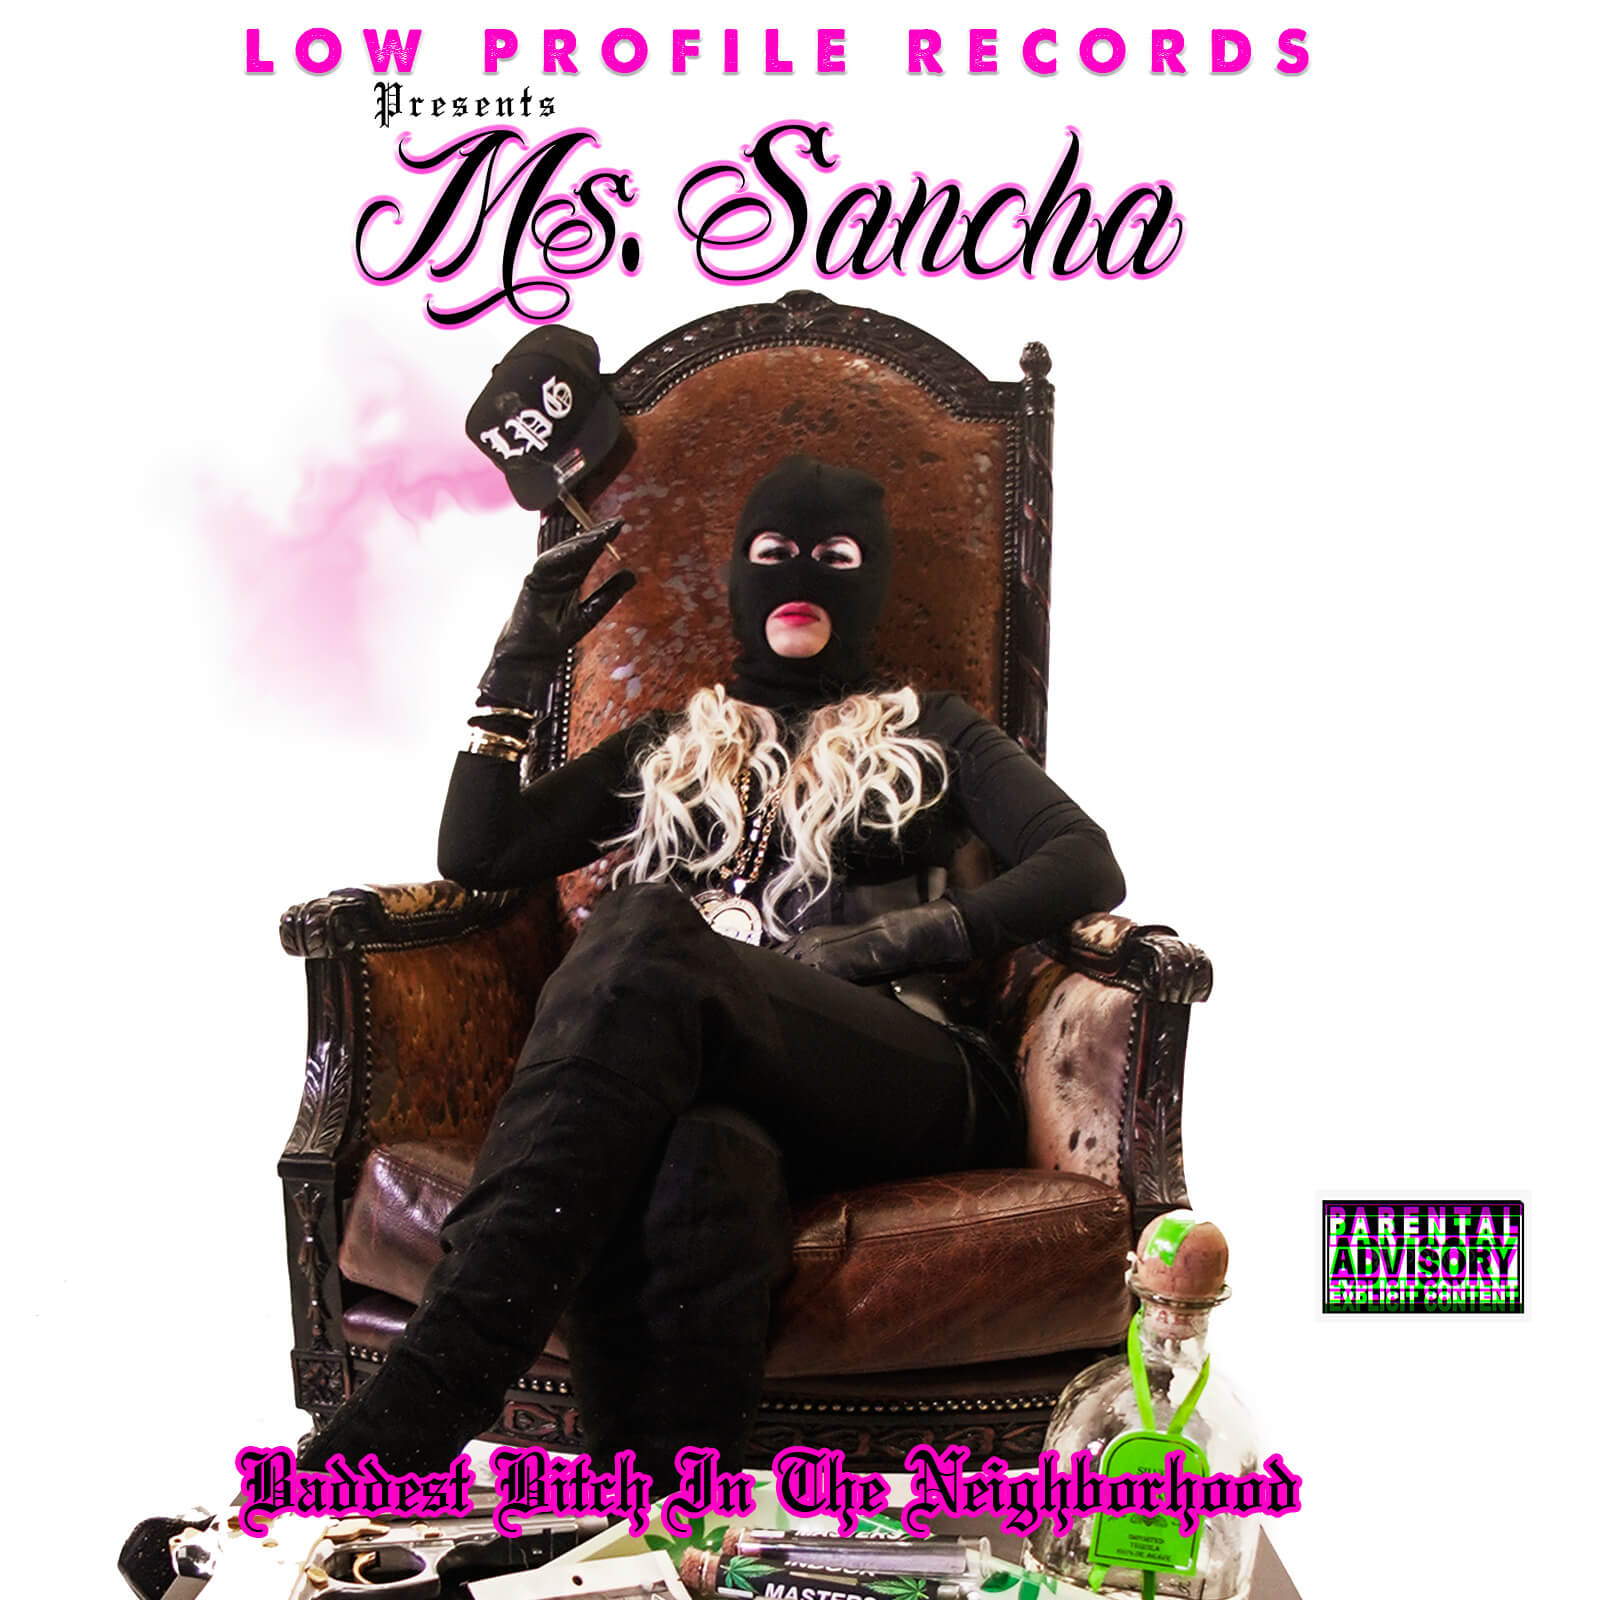 Ms.-Sancha-Baddest-Bitch-In-The-Neighborhood-Cover